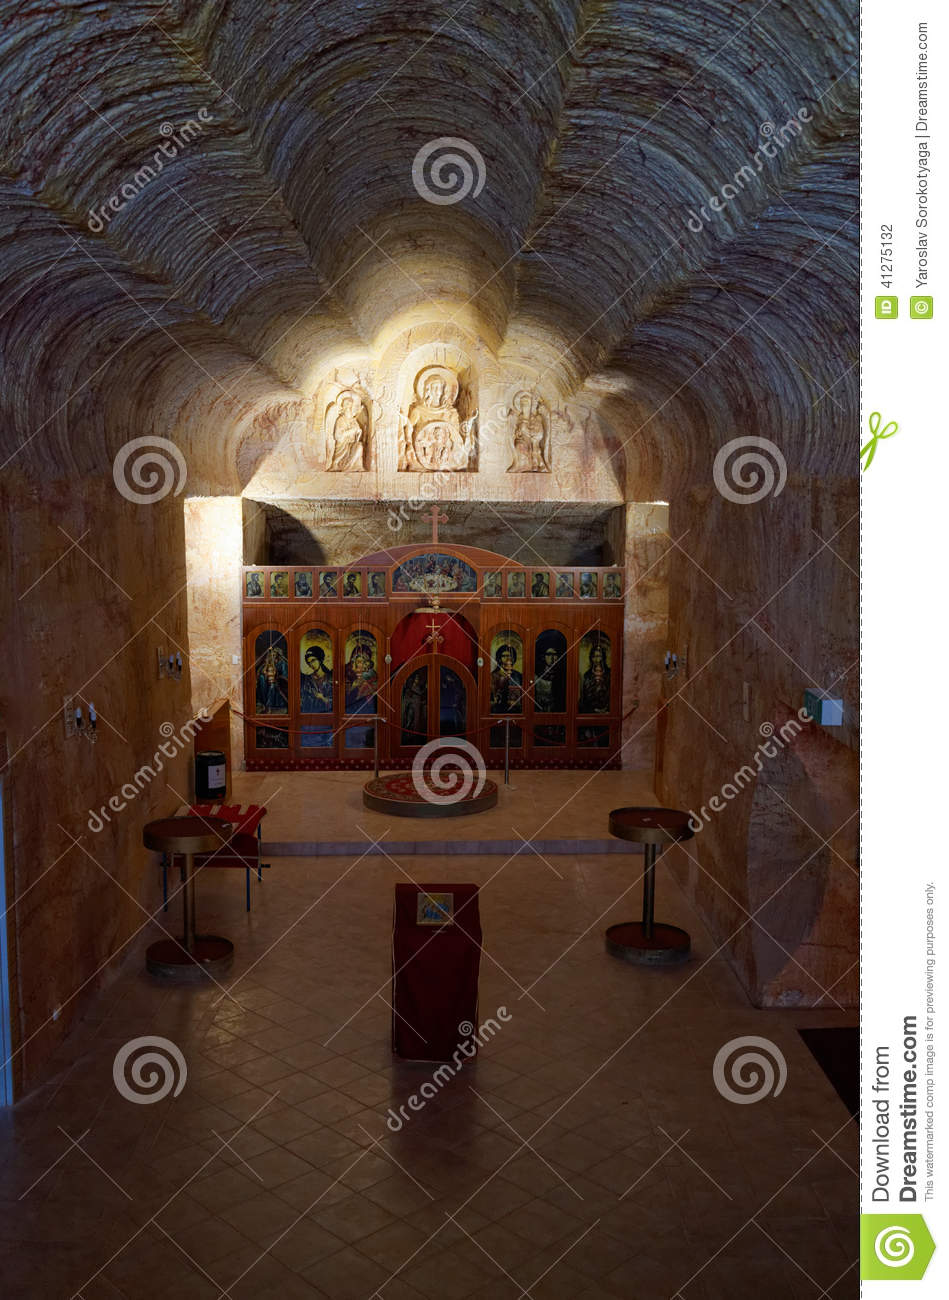 Underground Serbian Orthodox Church in Coober Pedy